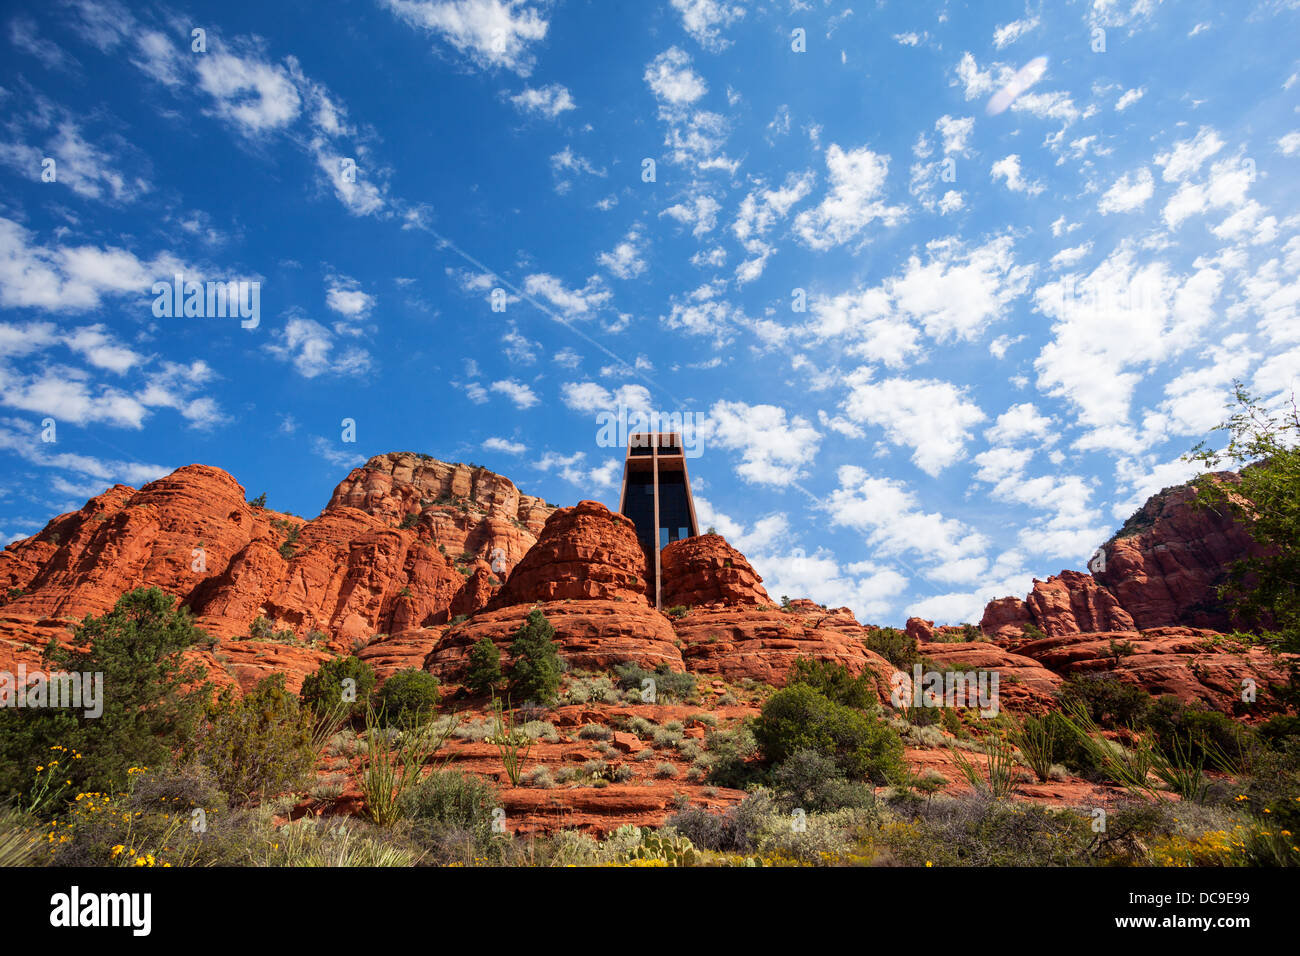 The Chapel of the Holy Cross set among red rocks in Sedona - Stock Image